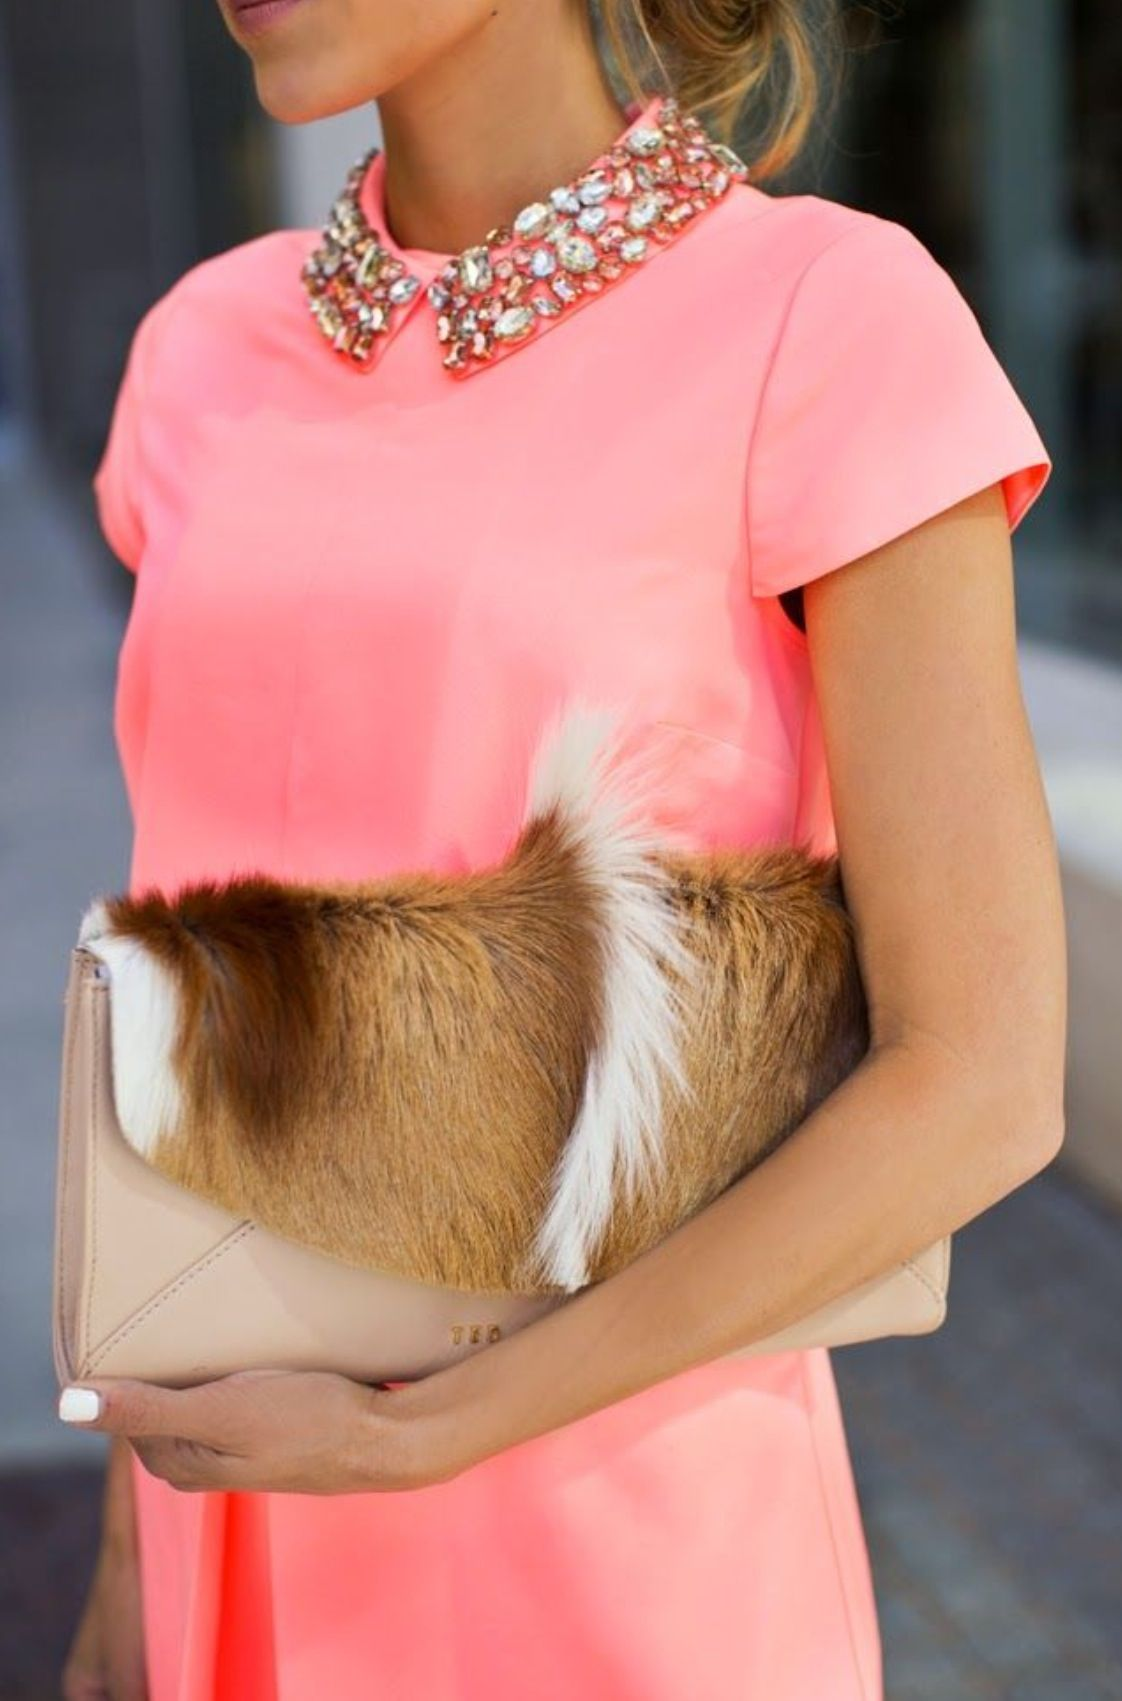 Love the top/dress, if that's a real fur purse I don't approve!